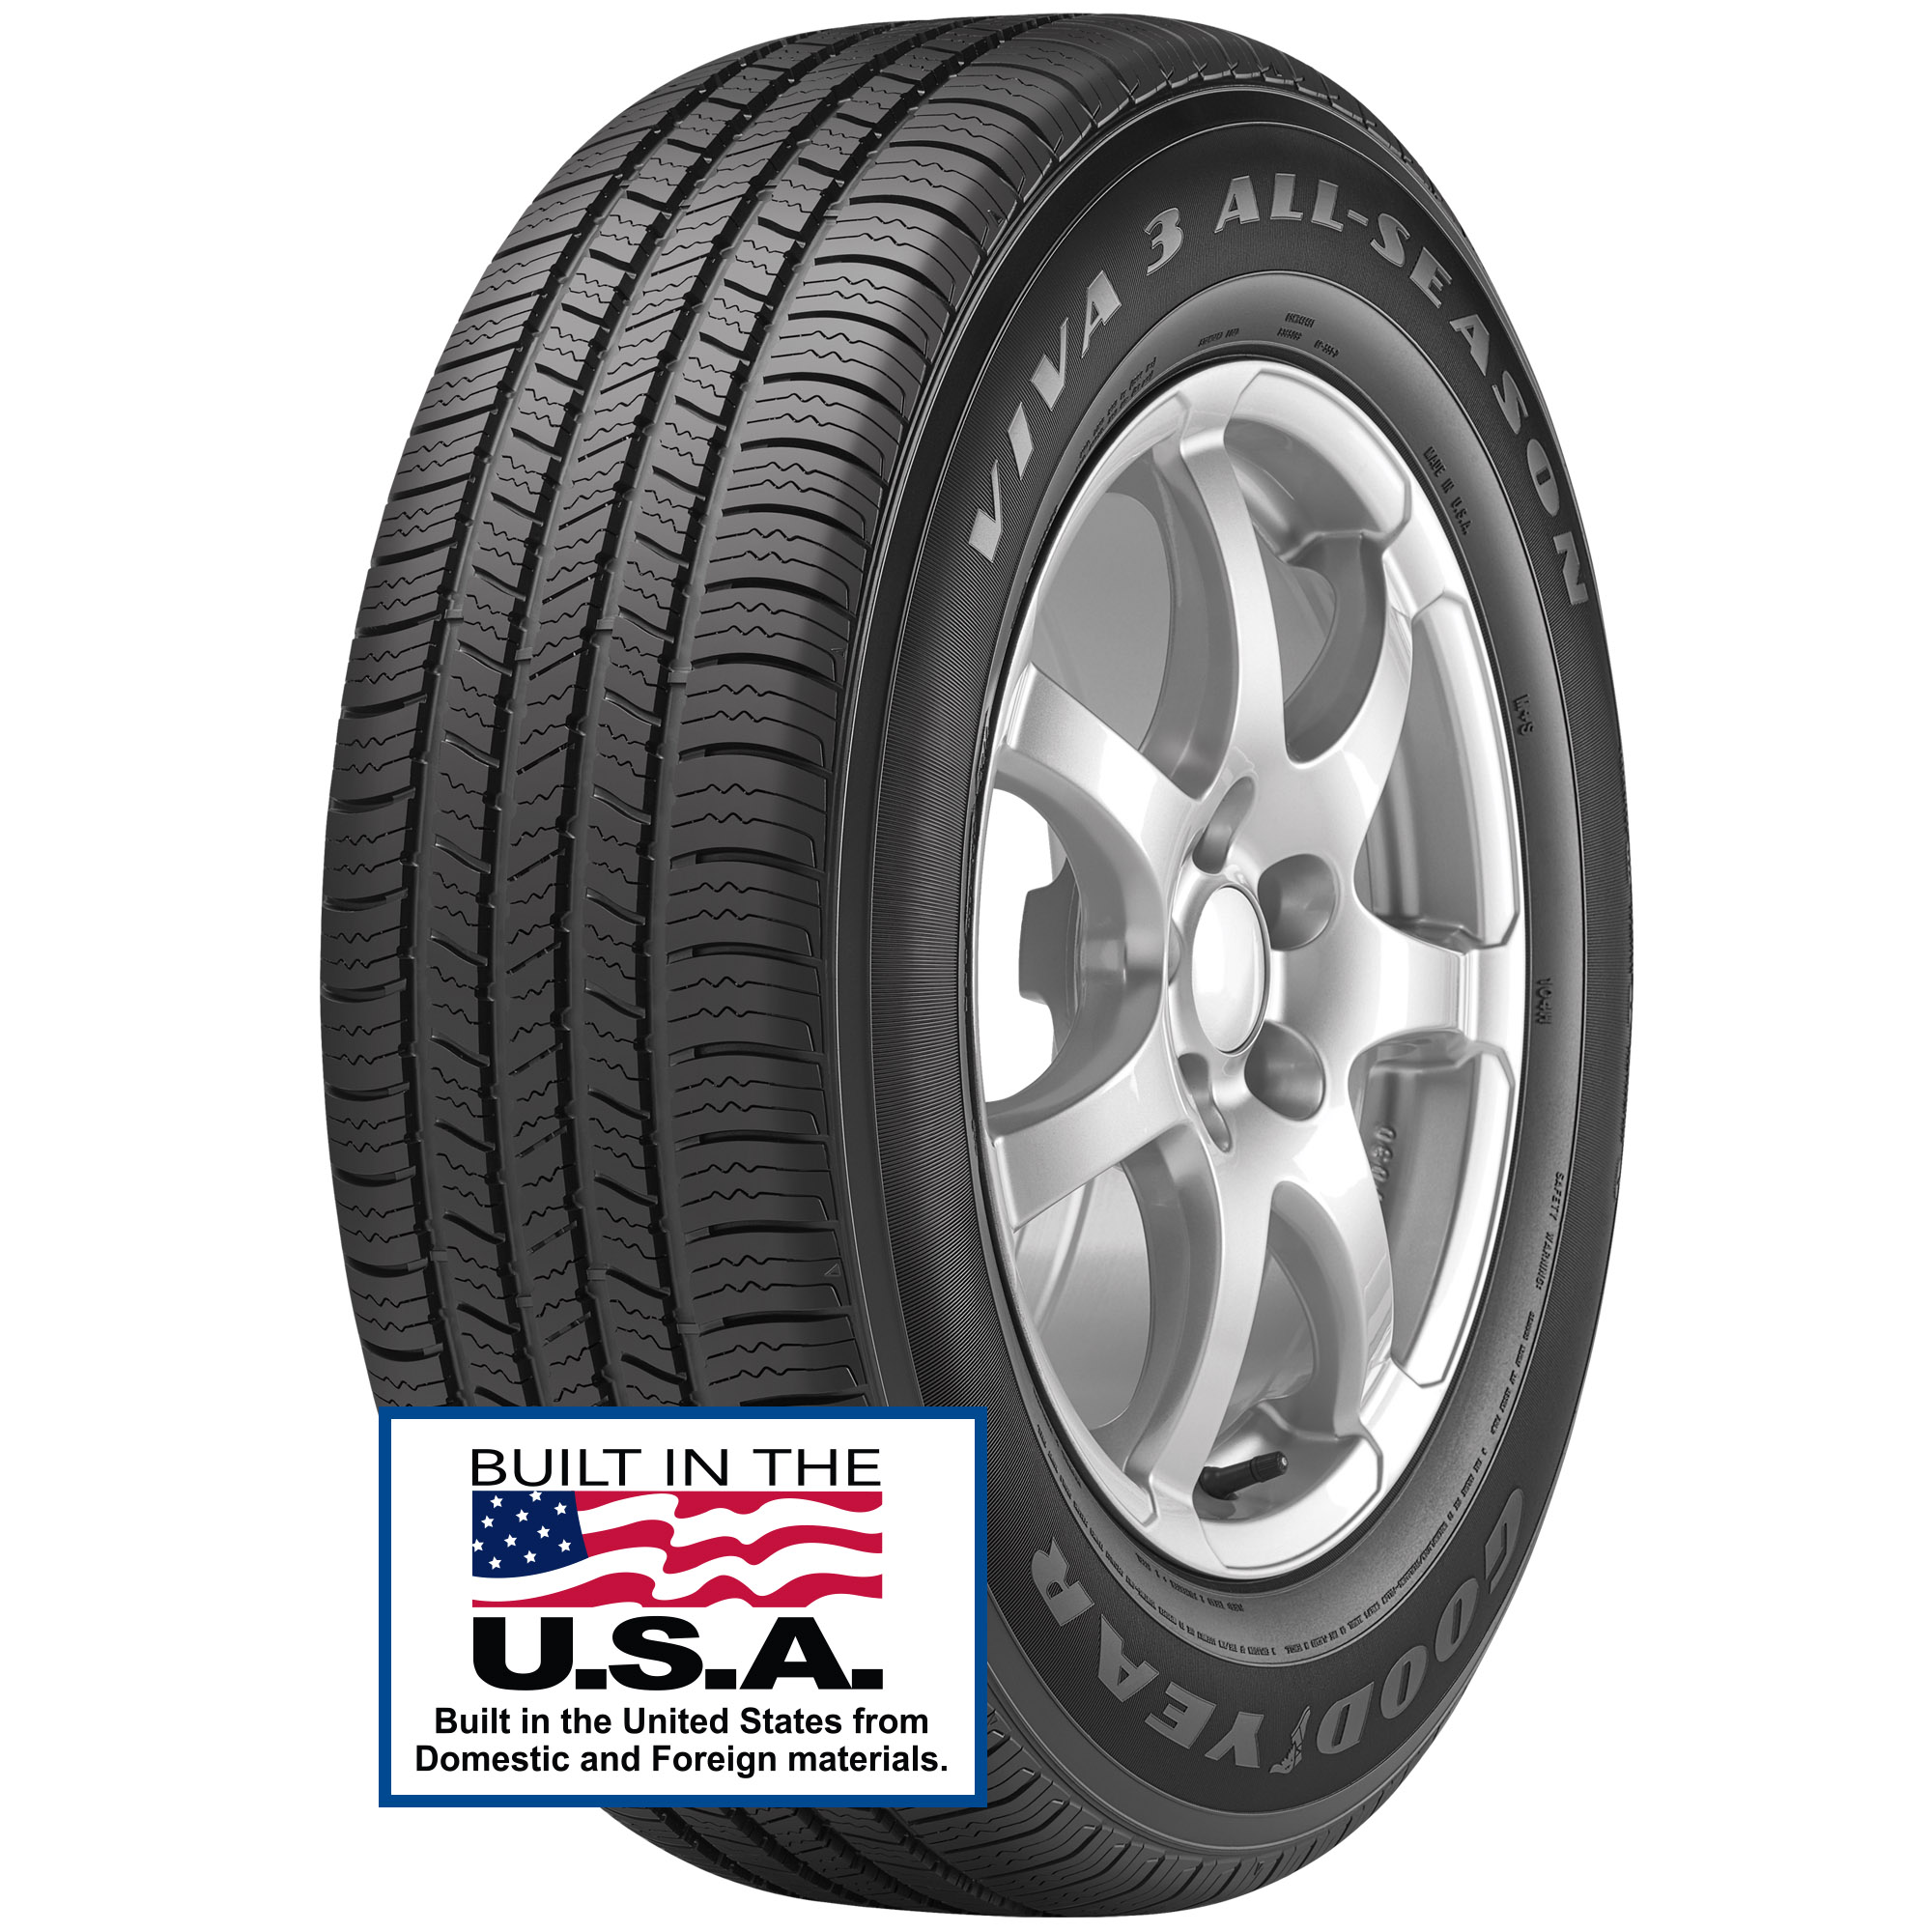 Goodyear 225/50r17 94v SL Viva 3 All Season